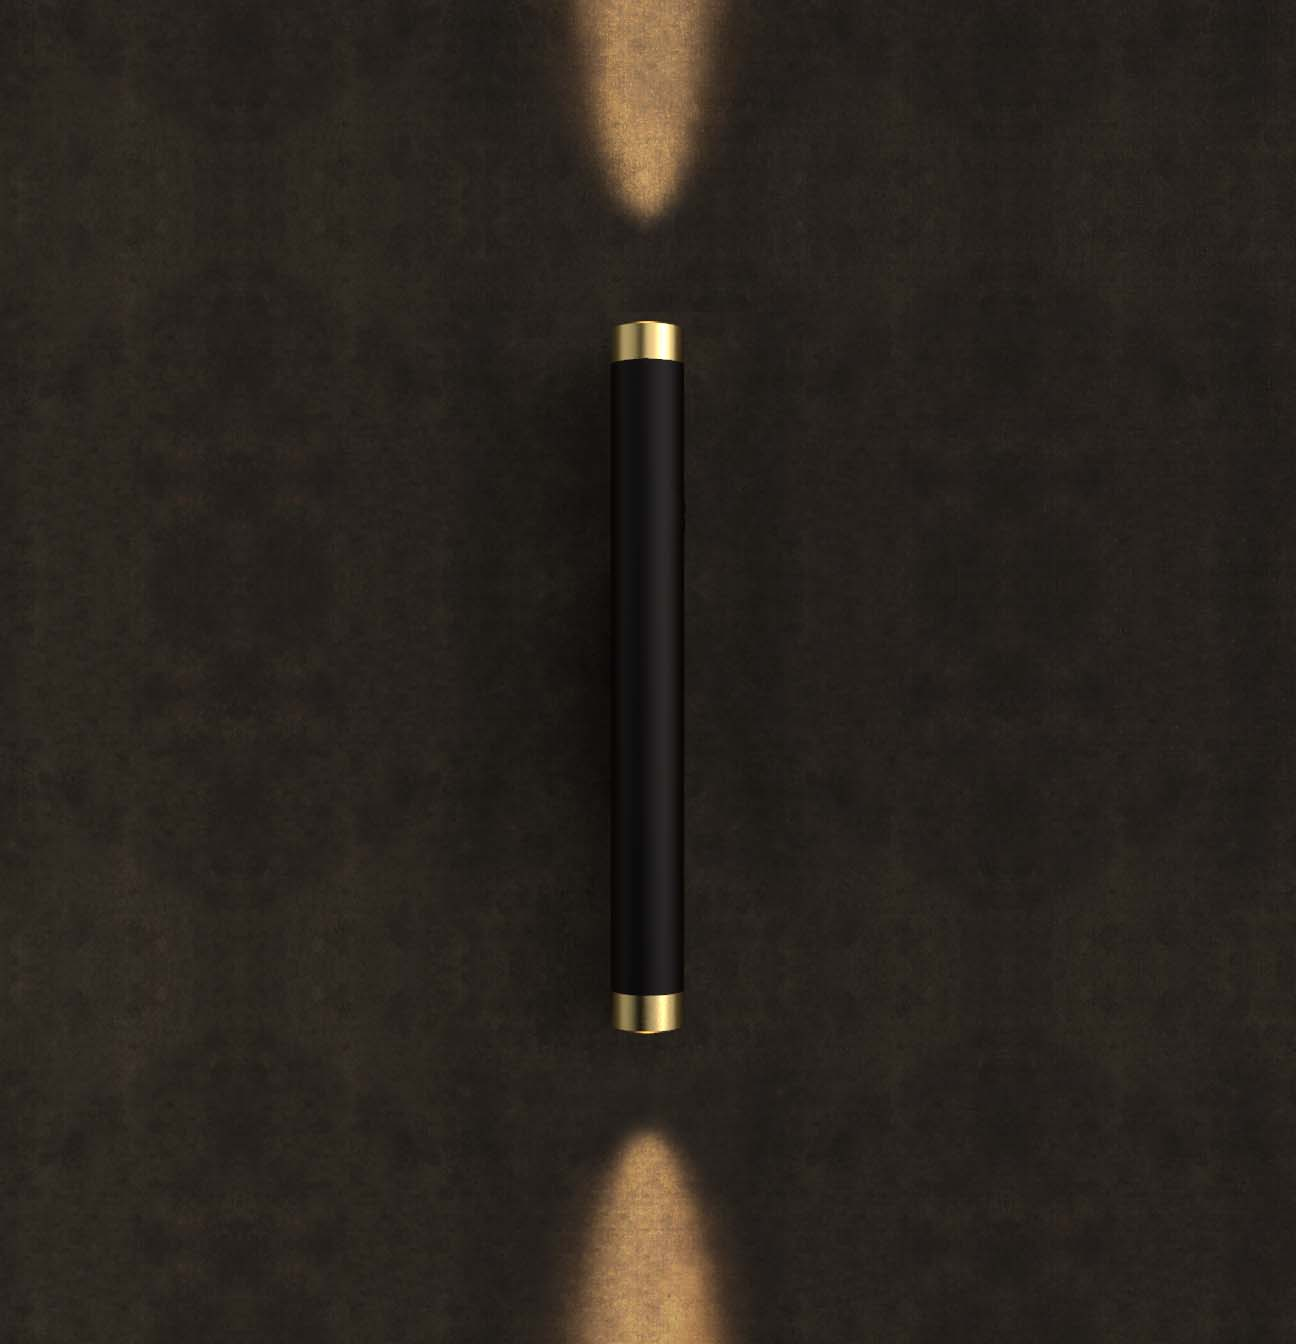 Scope_Sconce_Prouduct_Page_Image_04